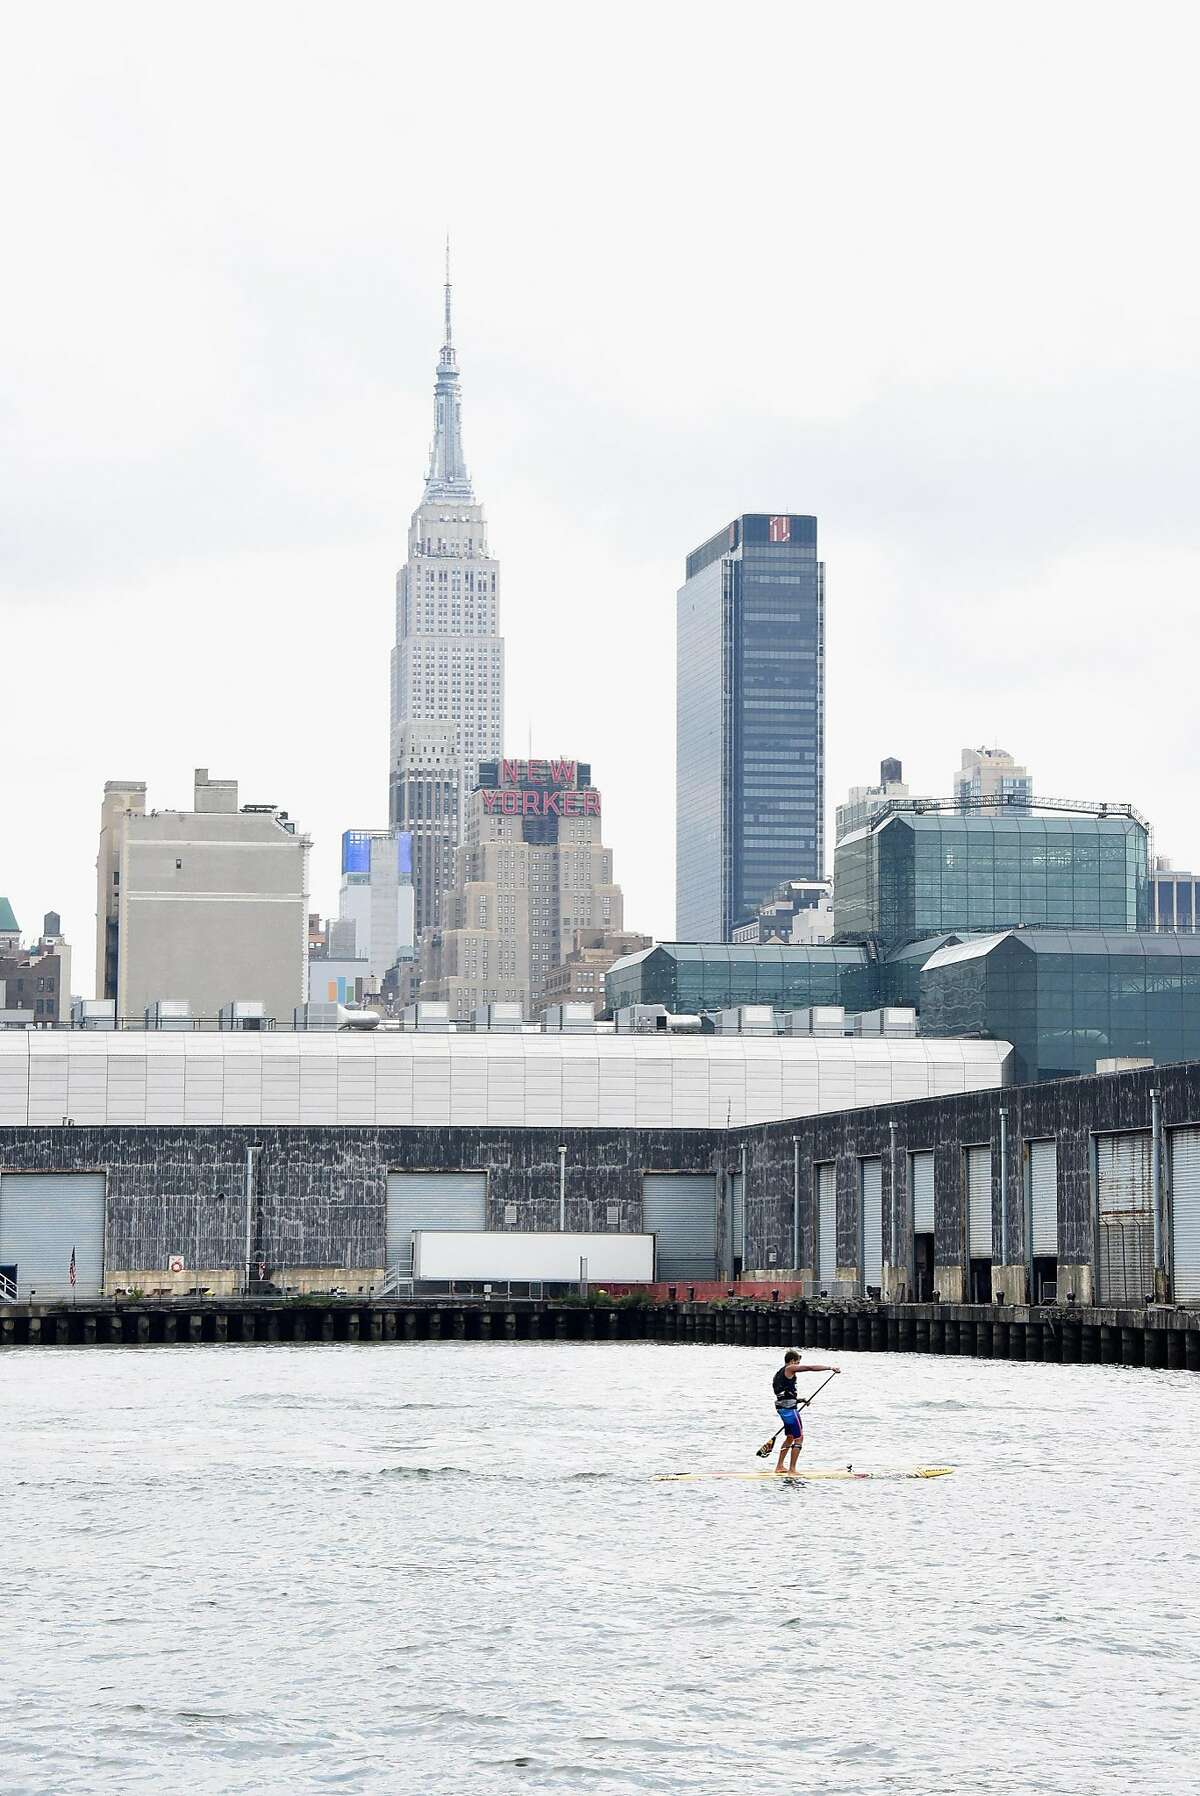 NEW YORK, NY - AUGUST 20: Stand-up paddle surfer Kai Lenny competes in SEA Paddle NYC in which TAG Heuer is the Official Timepiece and Official Timekeeper on August 20, 2016 in New York City. (Photo by Eugene Gologursky/Getty Images for Tag Heuer)